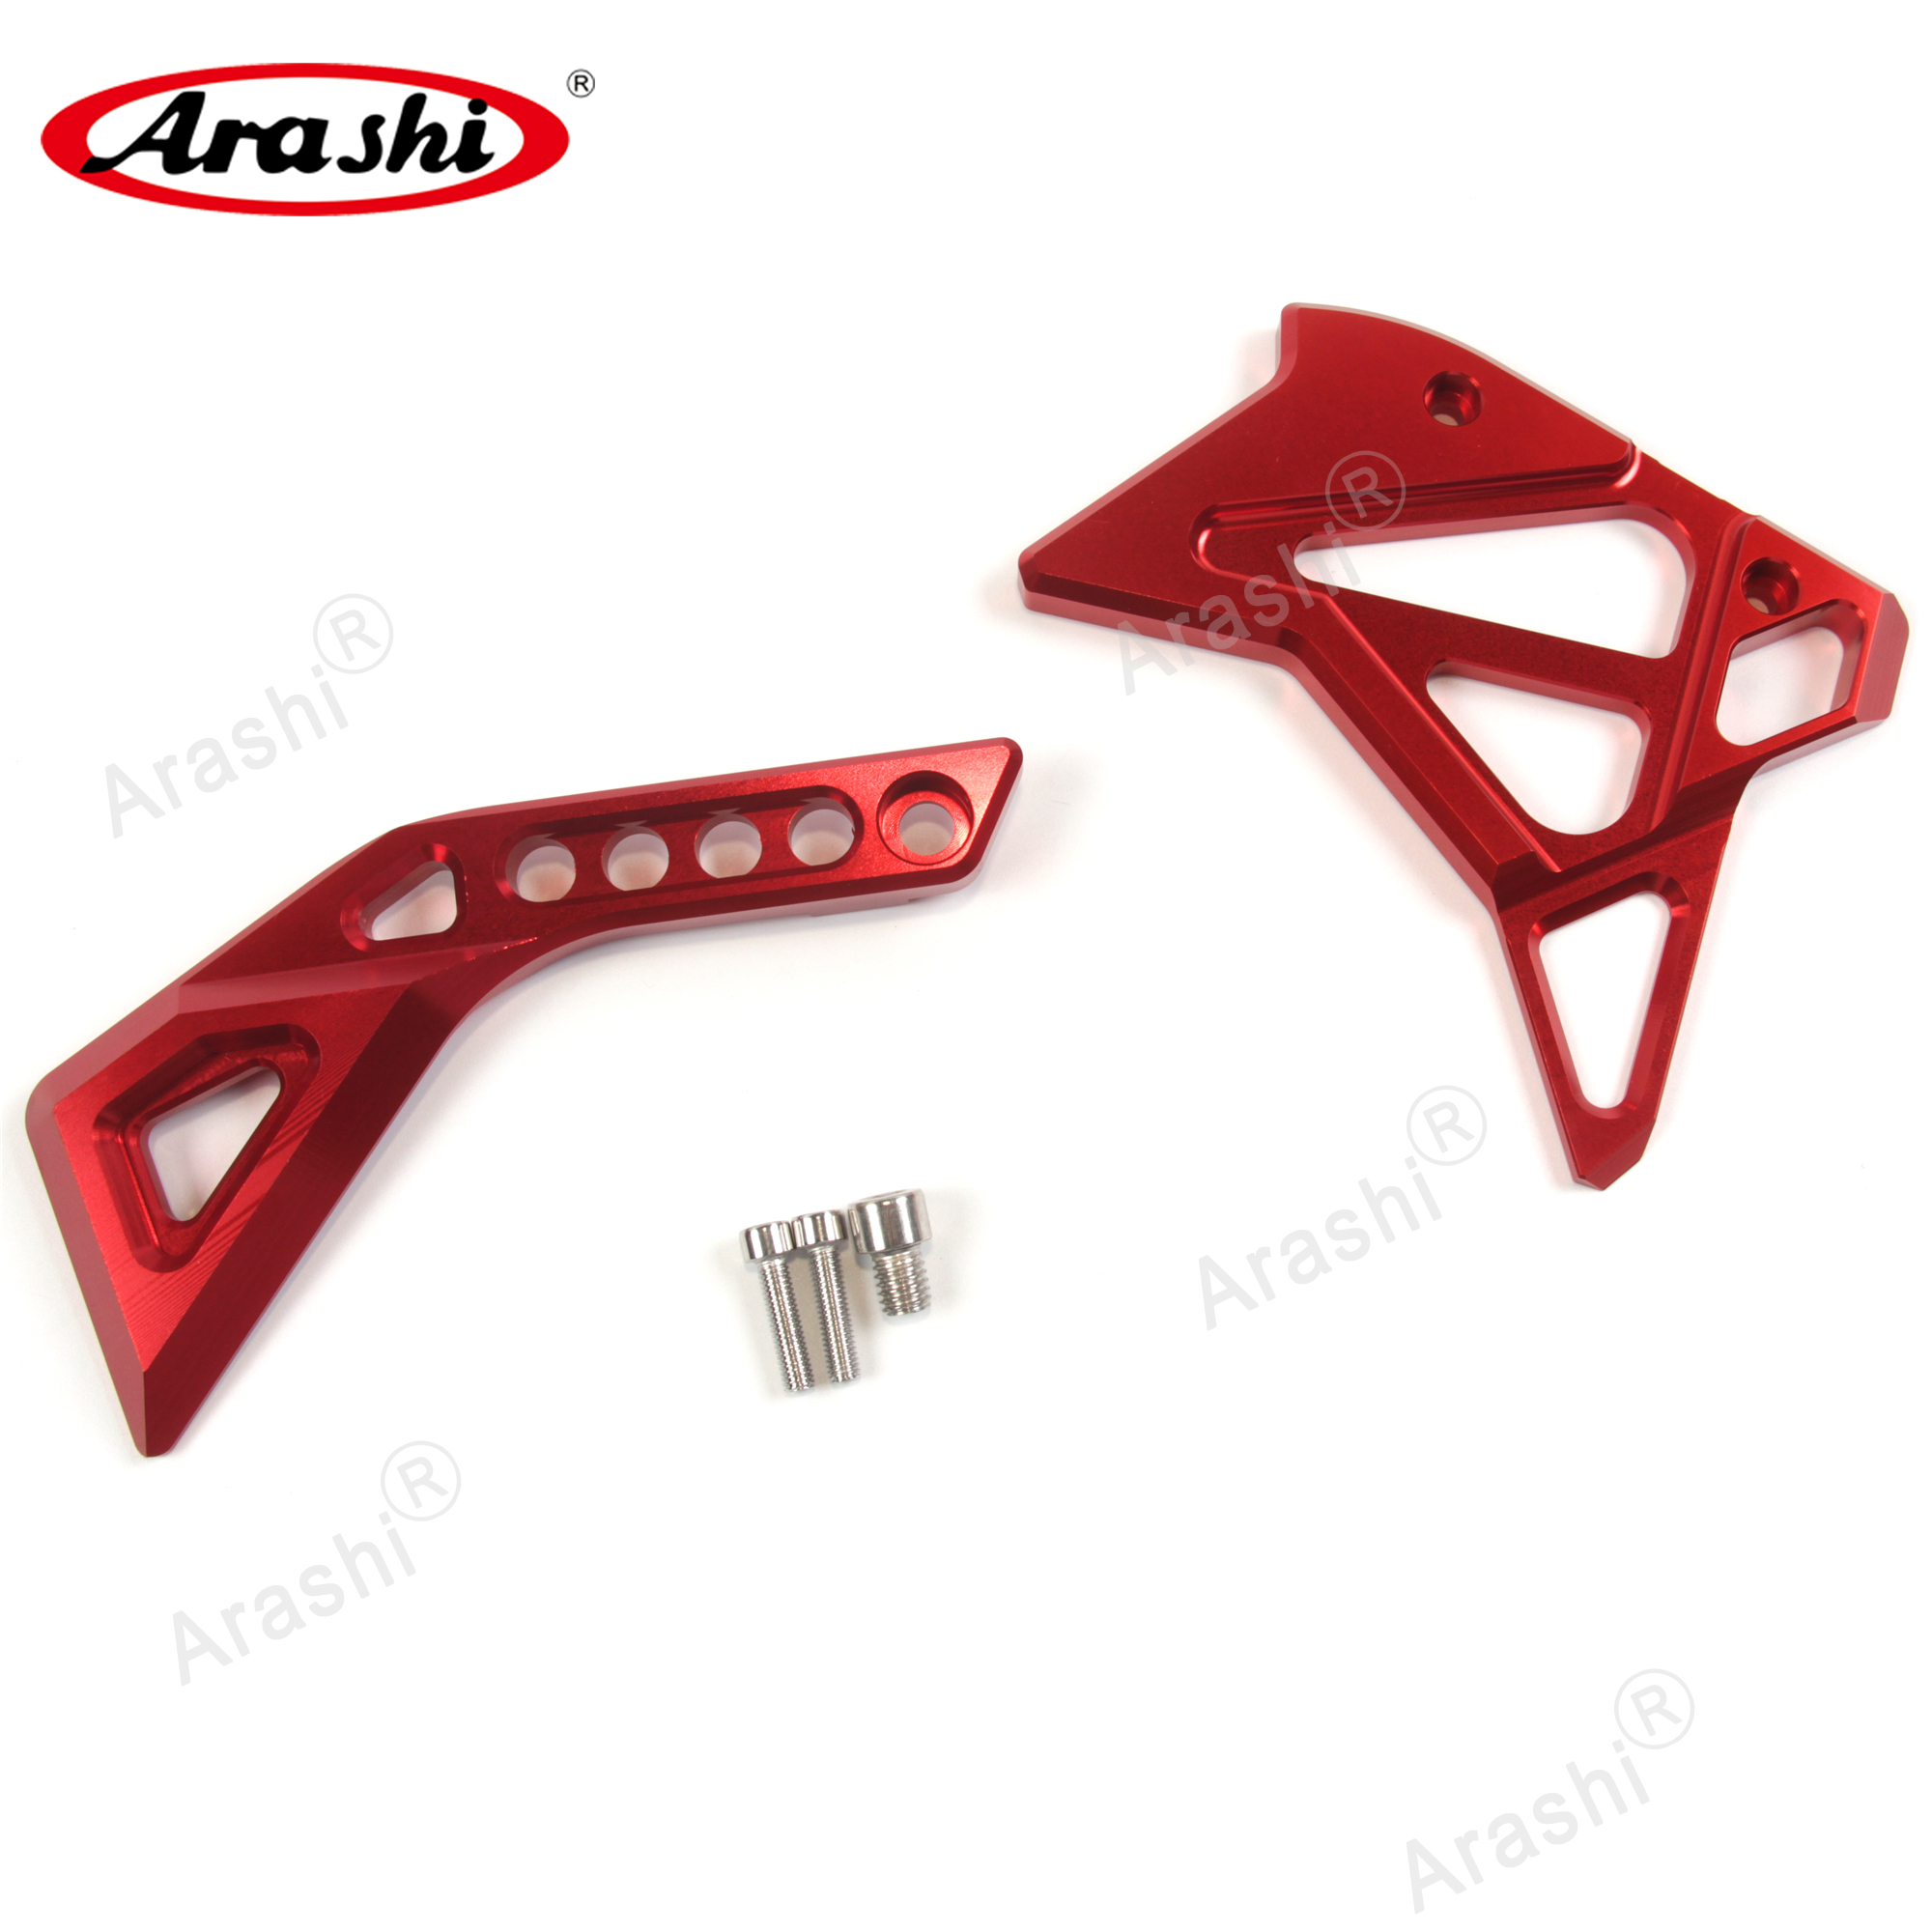 Arashi CNC Fuel Injection Cover For KAWASAKI <font><b>Z1000</b></font> <font><b>2015</b></font> 2016 2017 2018 Protective Case Guard Z 1000 Motorcycle Accessories image